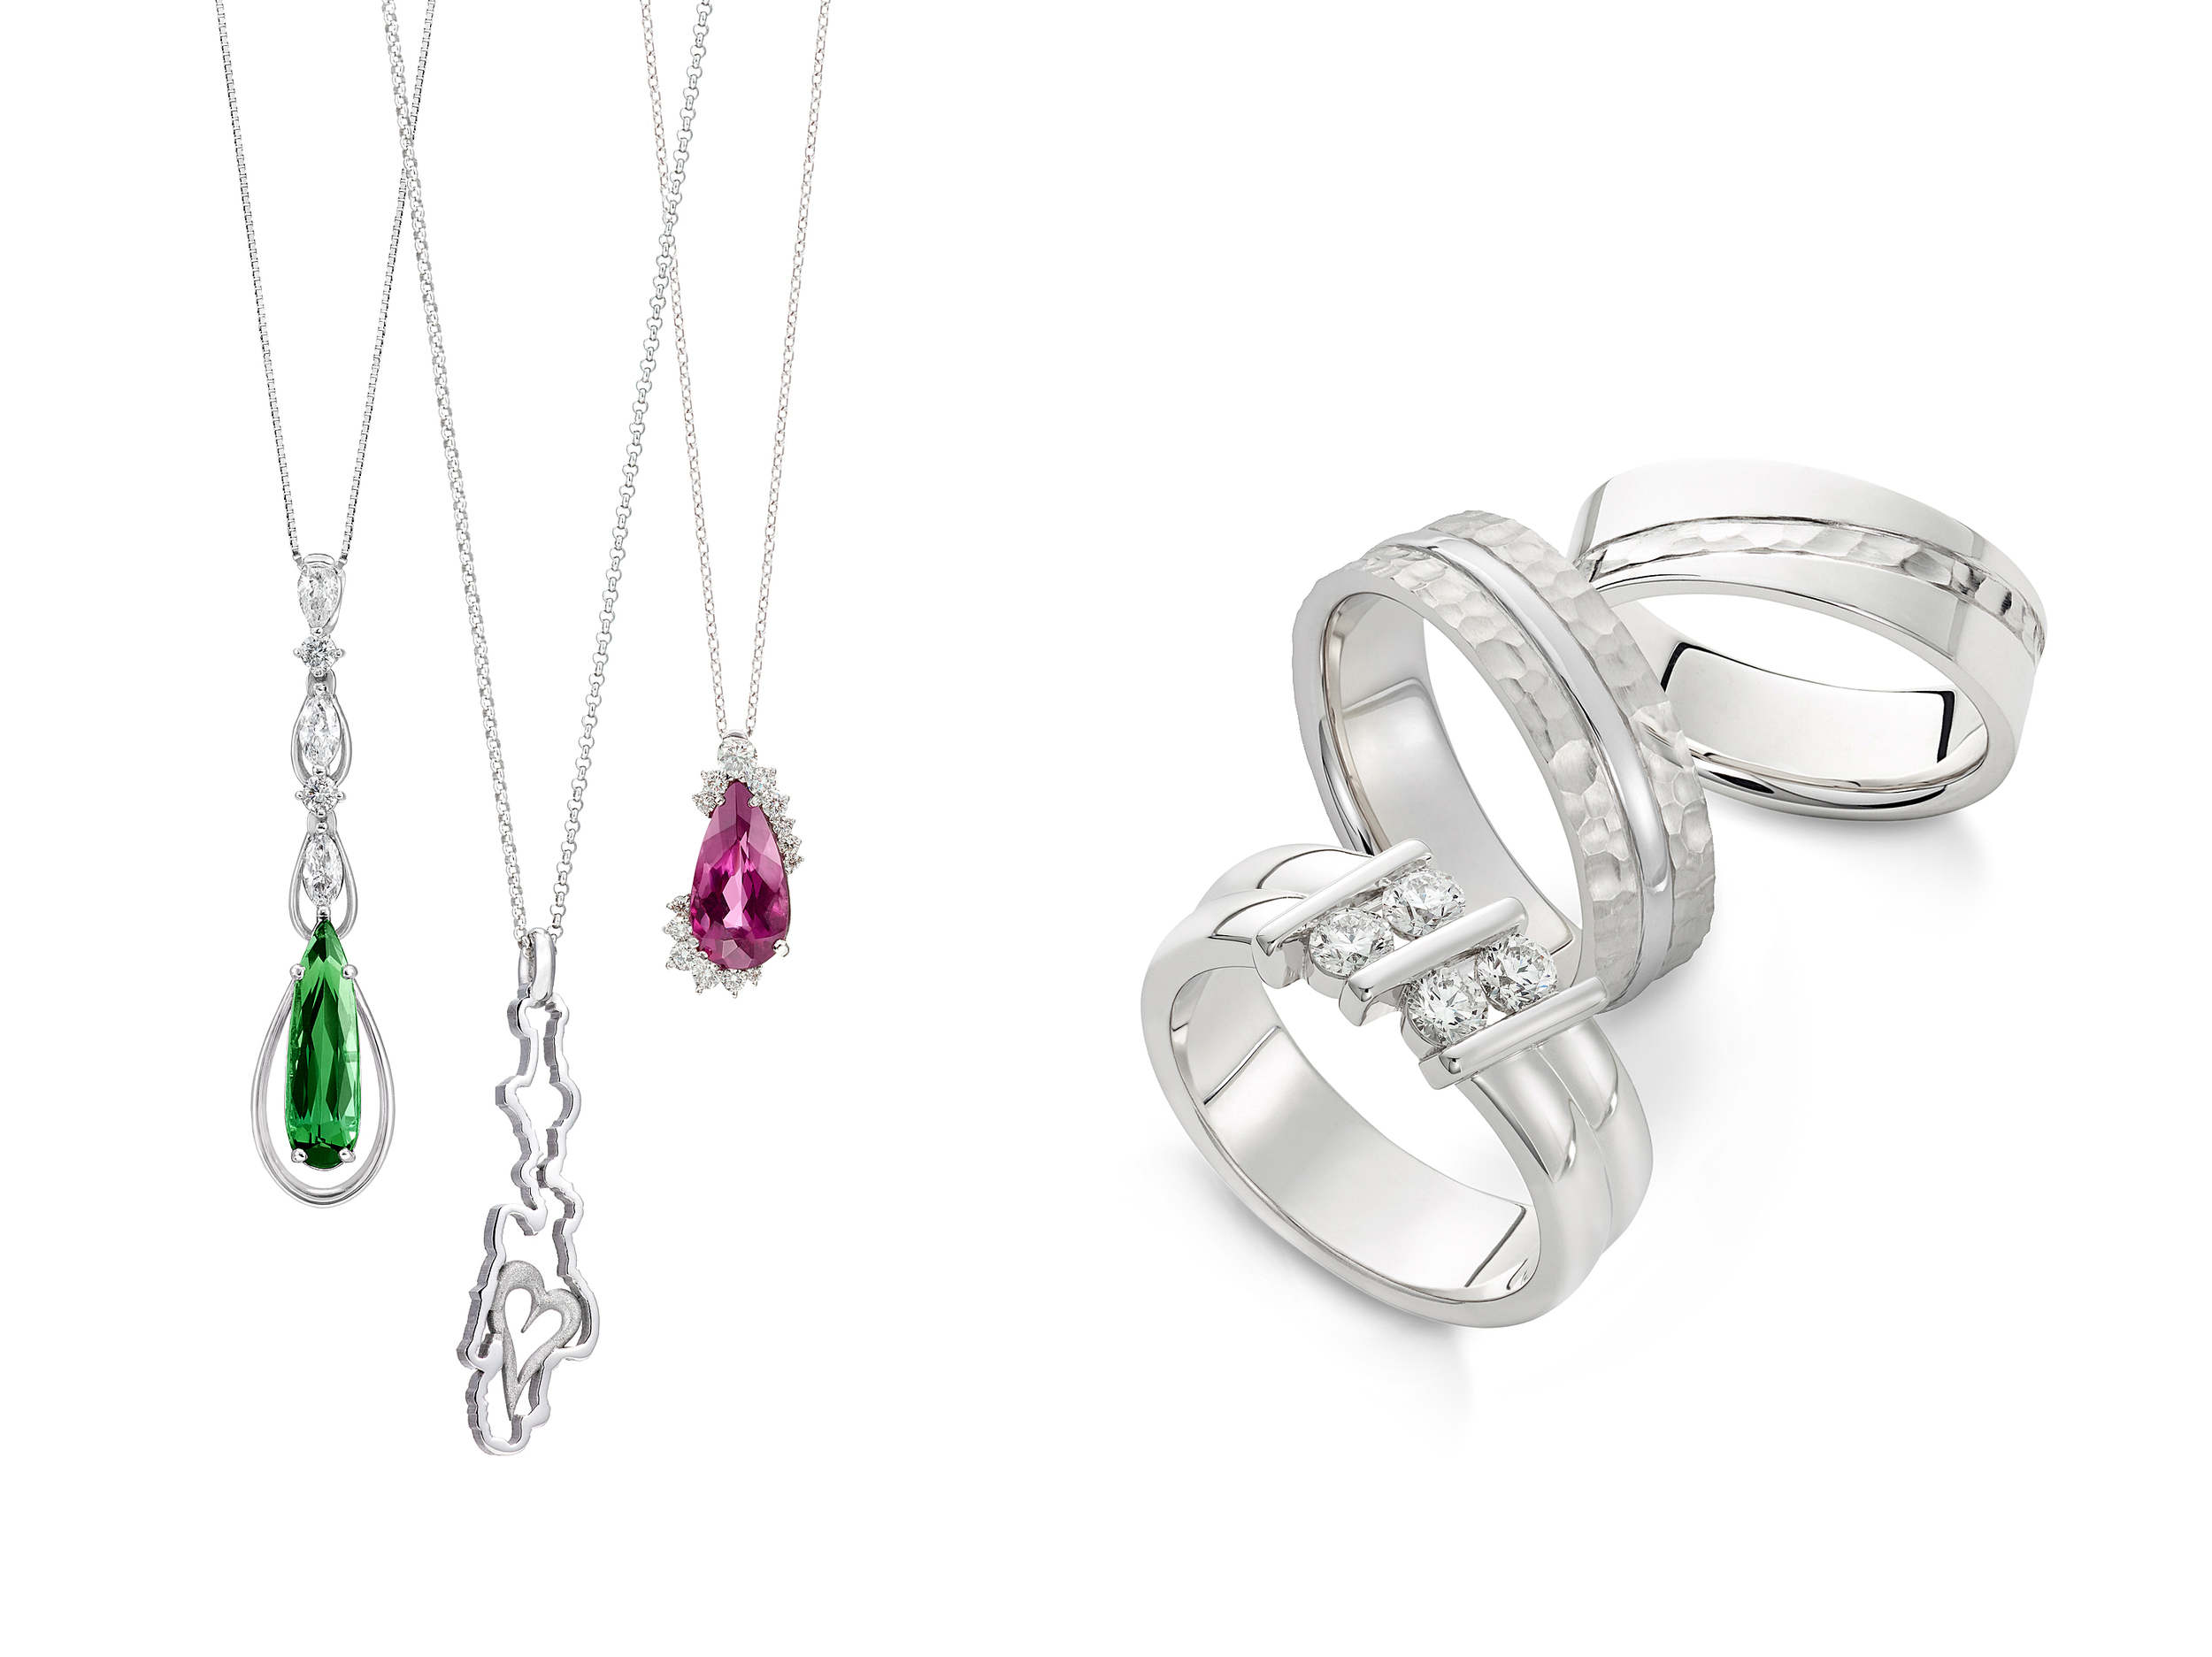 PENDANT + RINGS | JEWELRY DESIGN CENTER